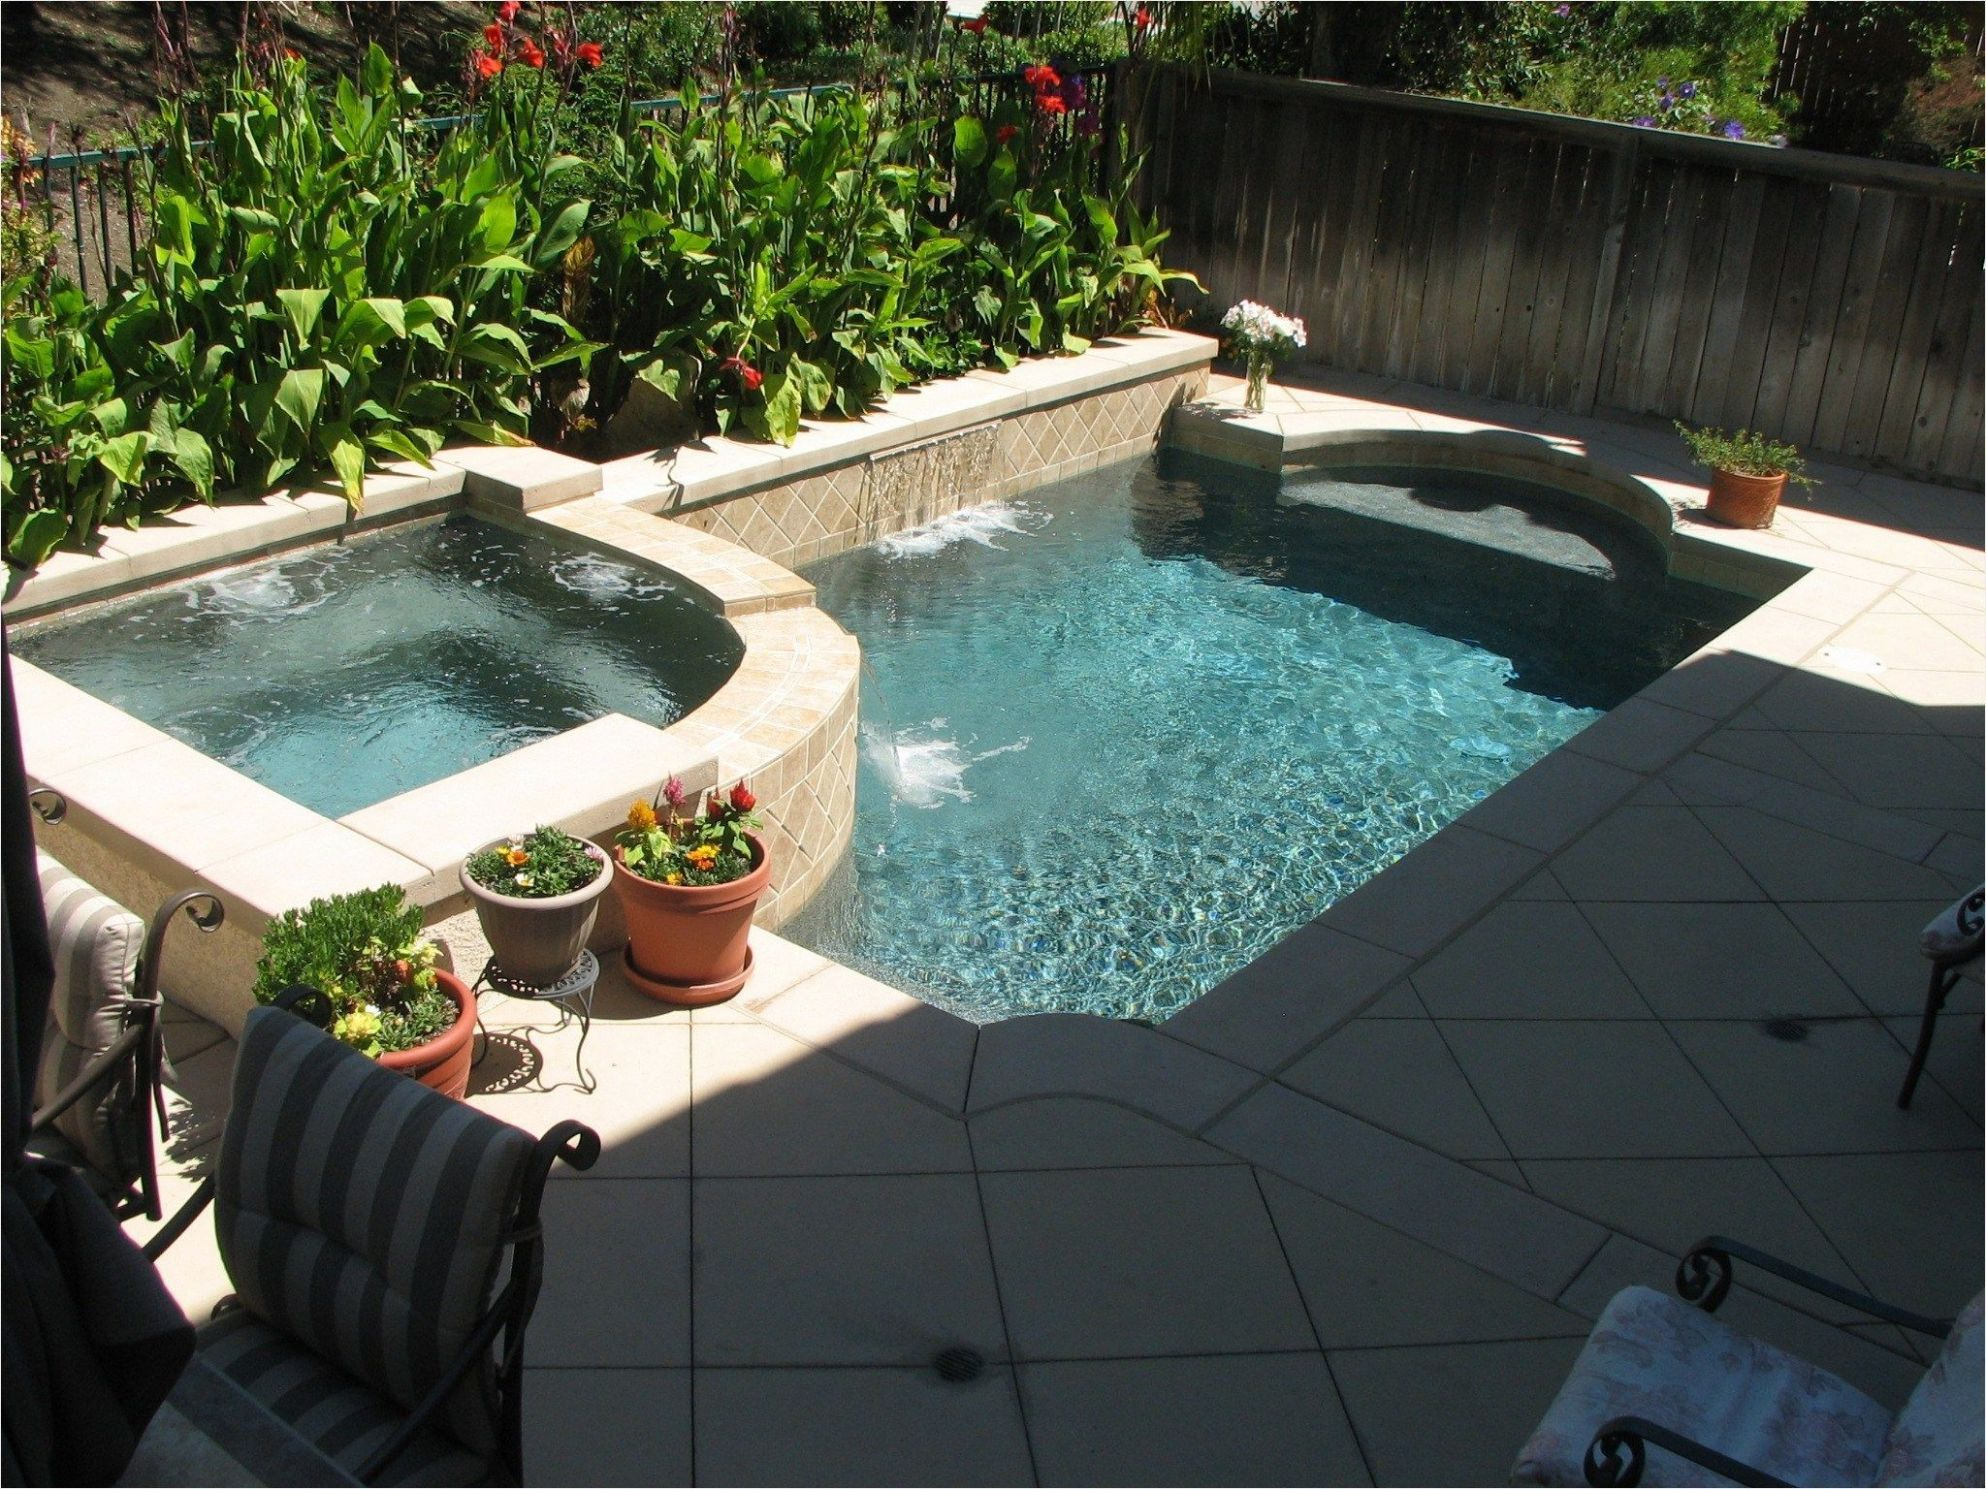 ideas for small yards pool 9 - Viral Decoration #pool ideas for ..